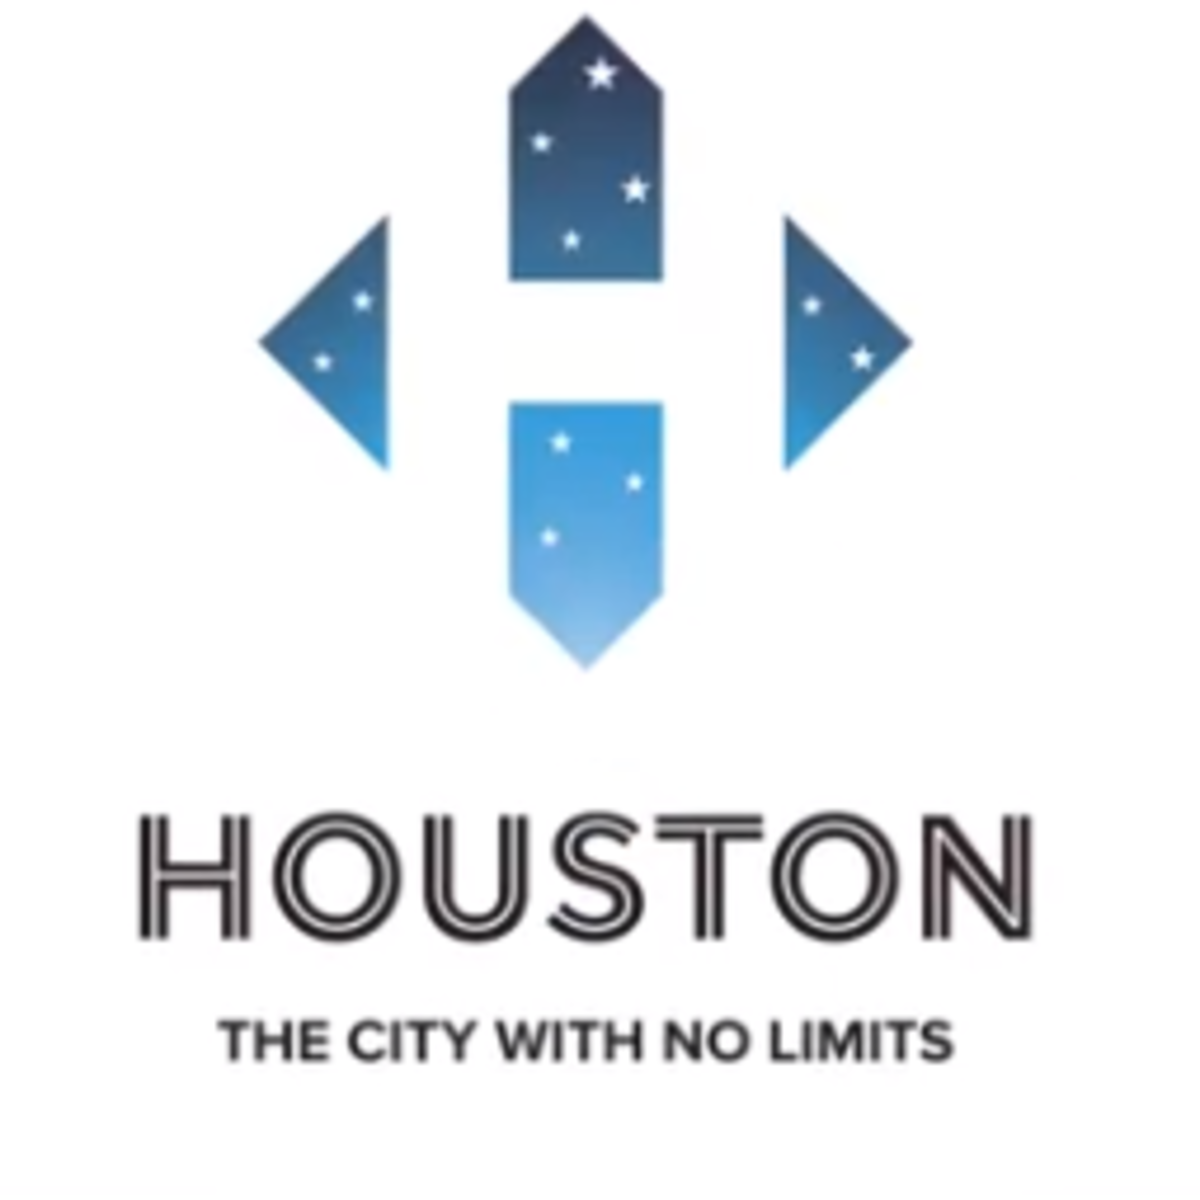 Houston The City With No Limits Slogan